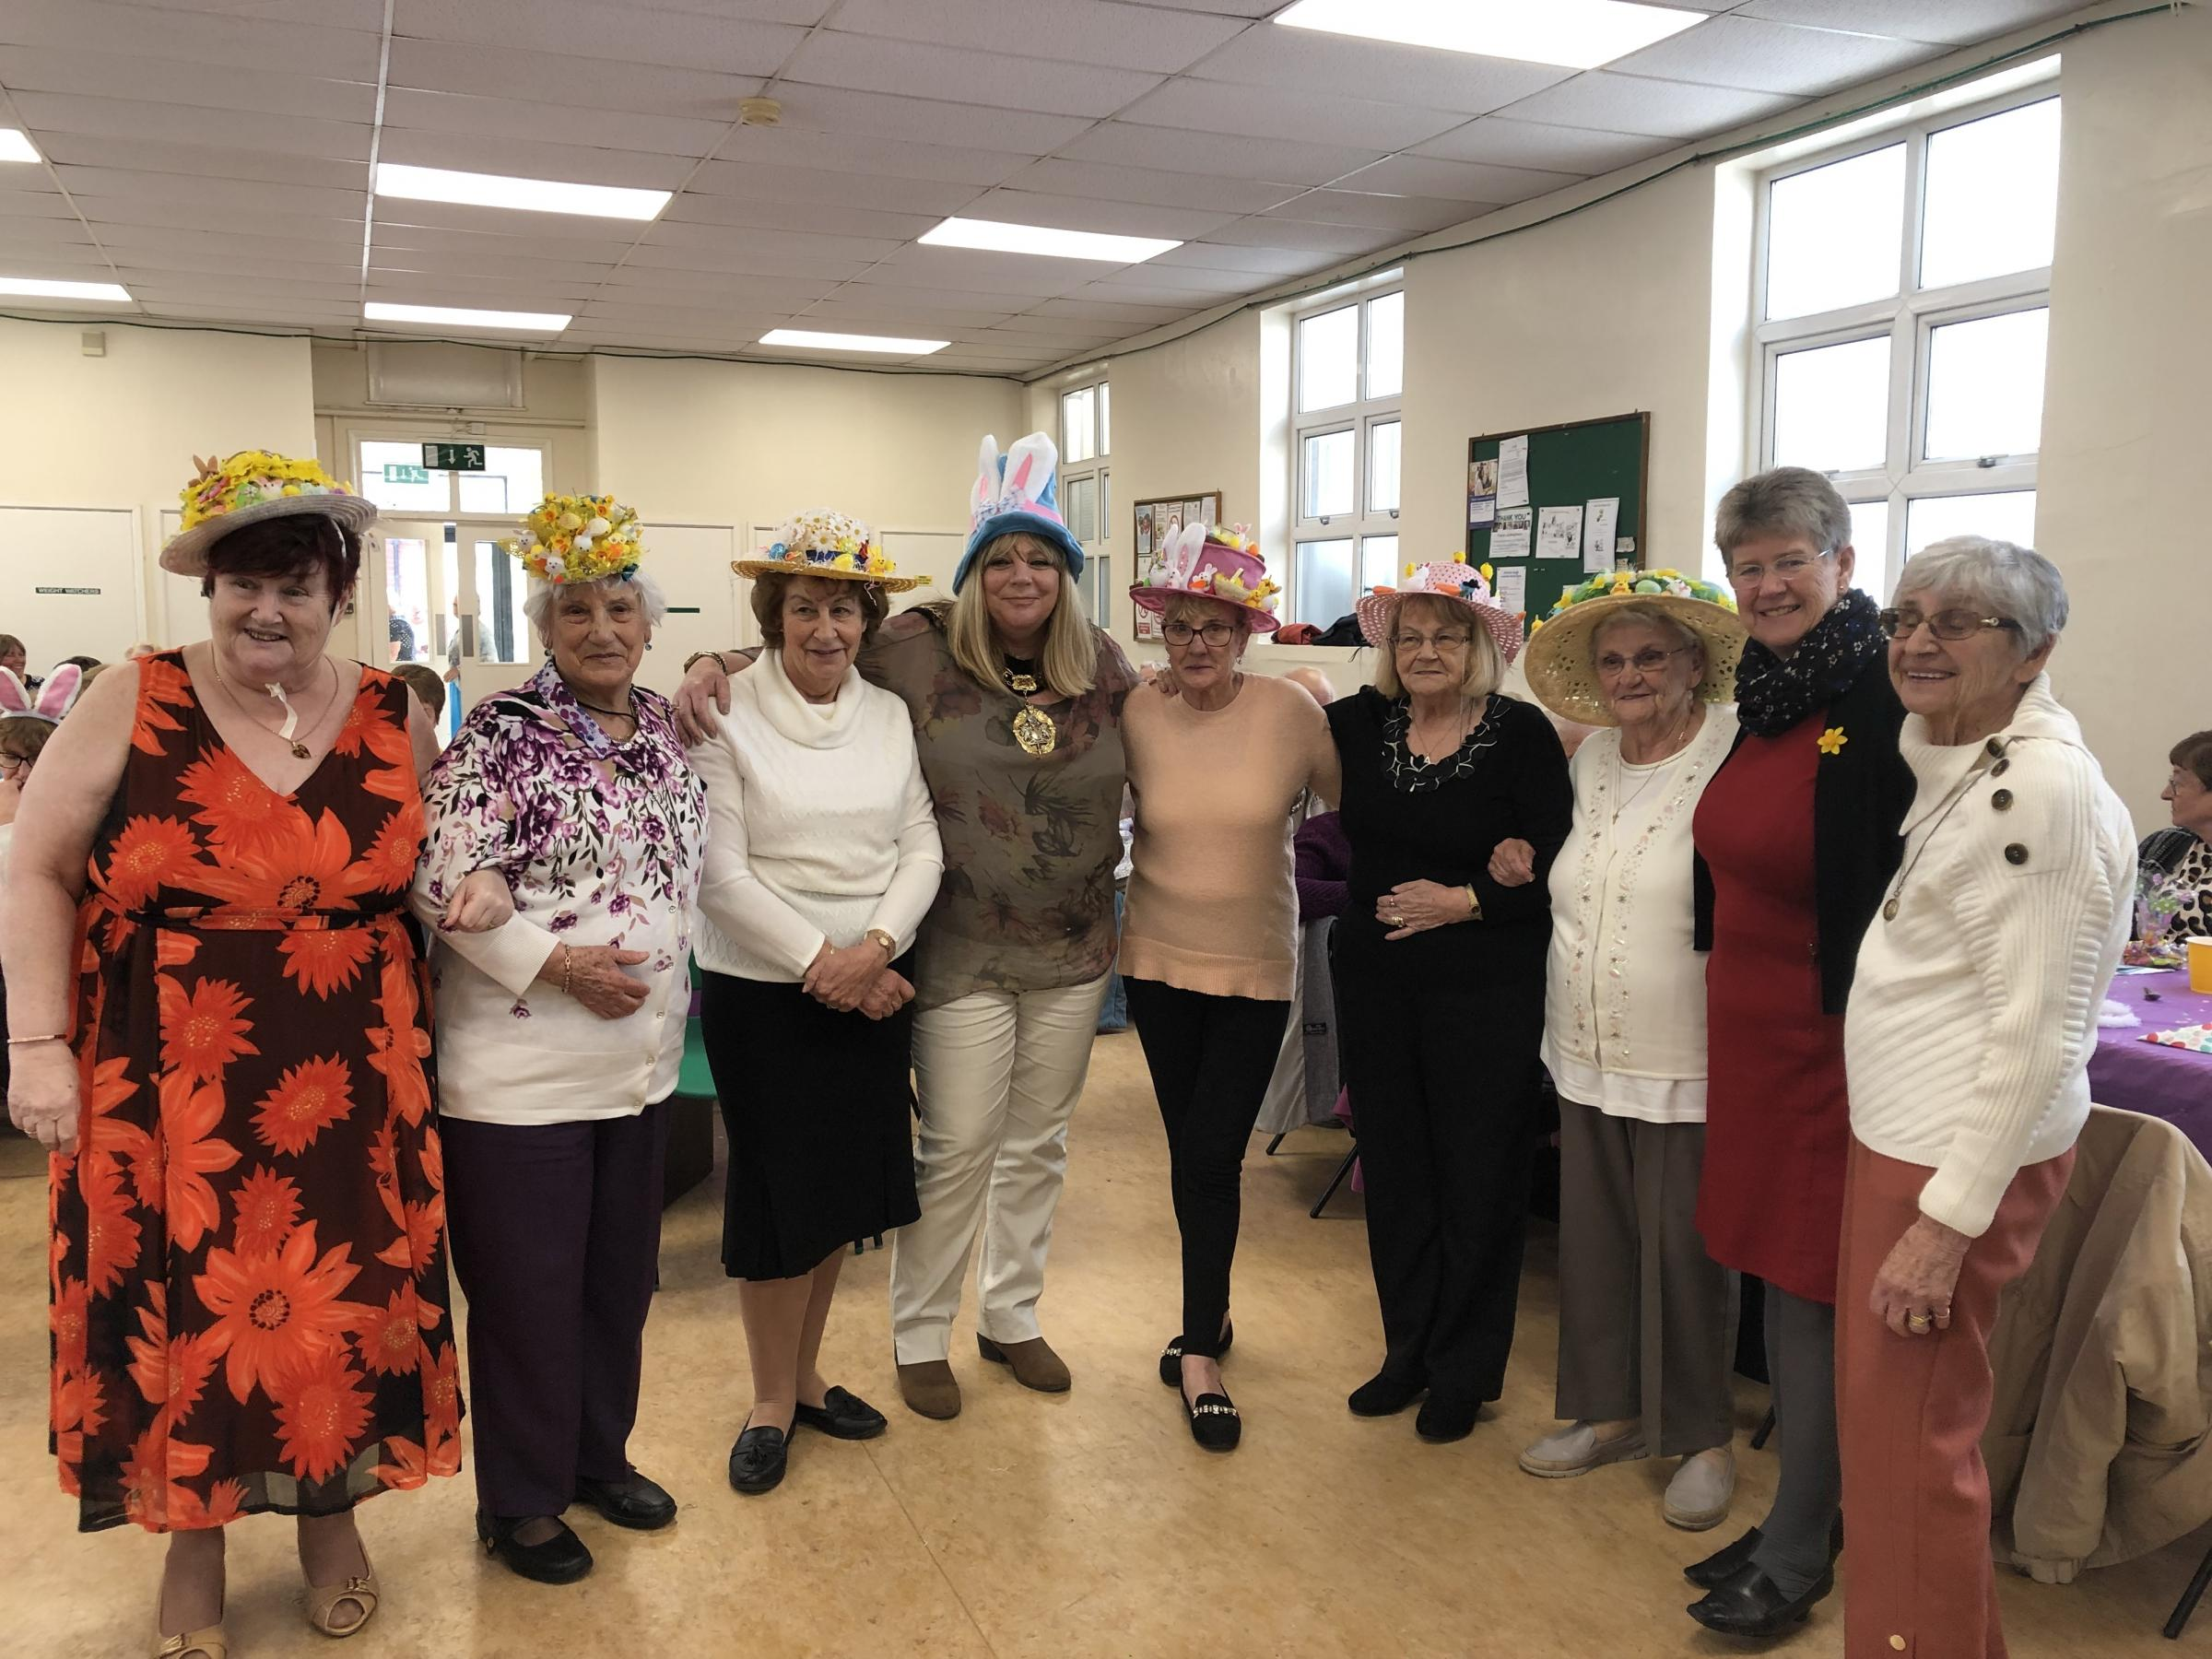 Easter bonnet winners at the Barry Friends and Neighbours Easter party